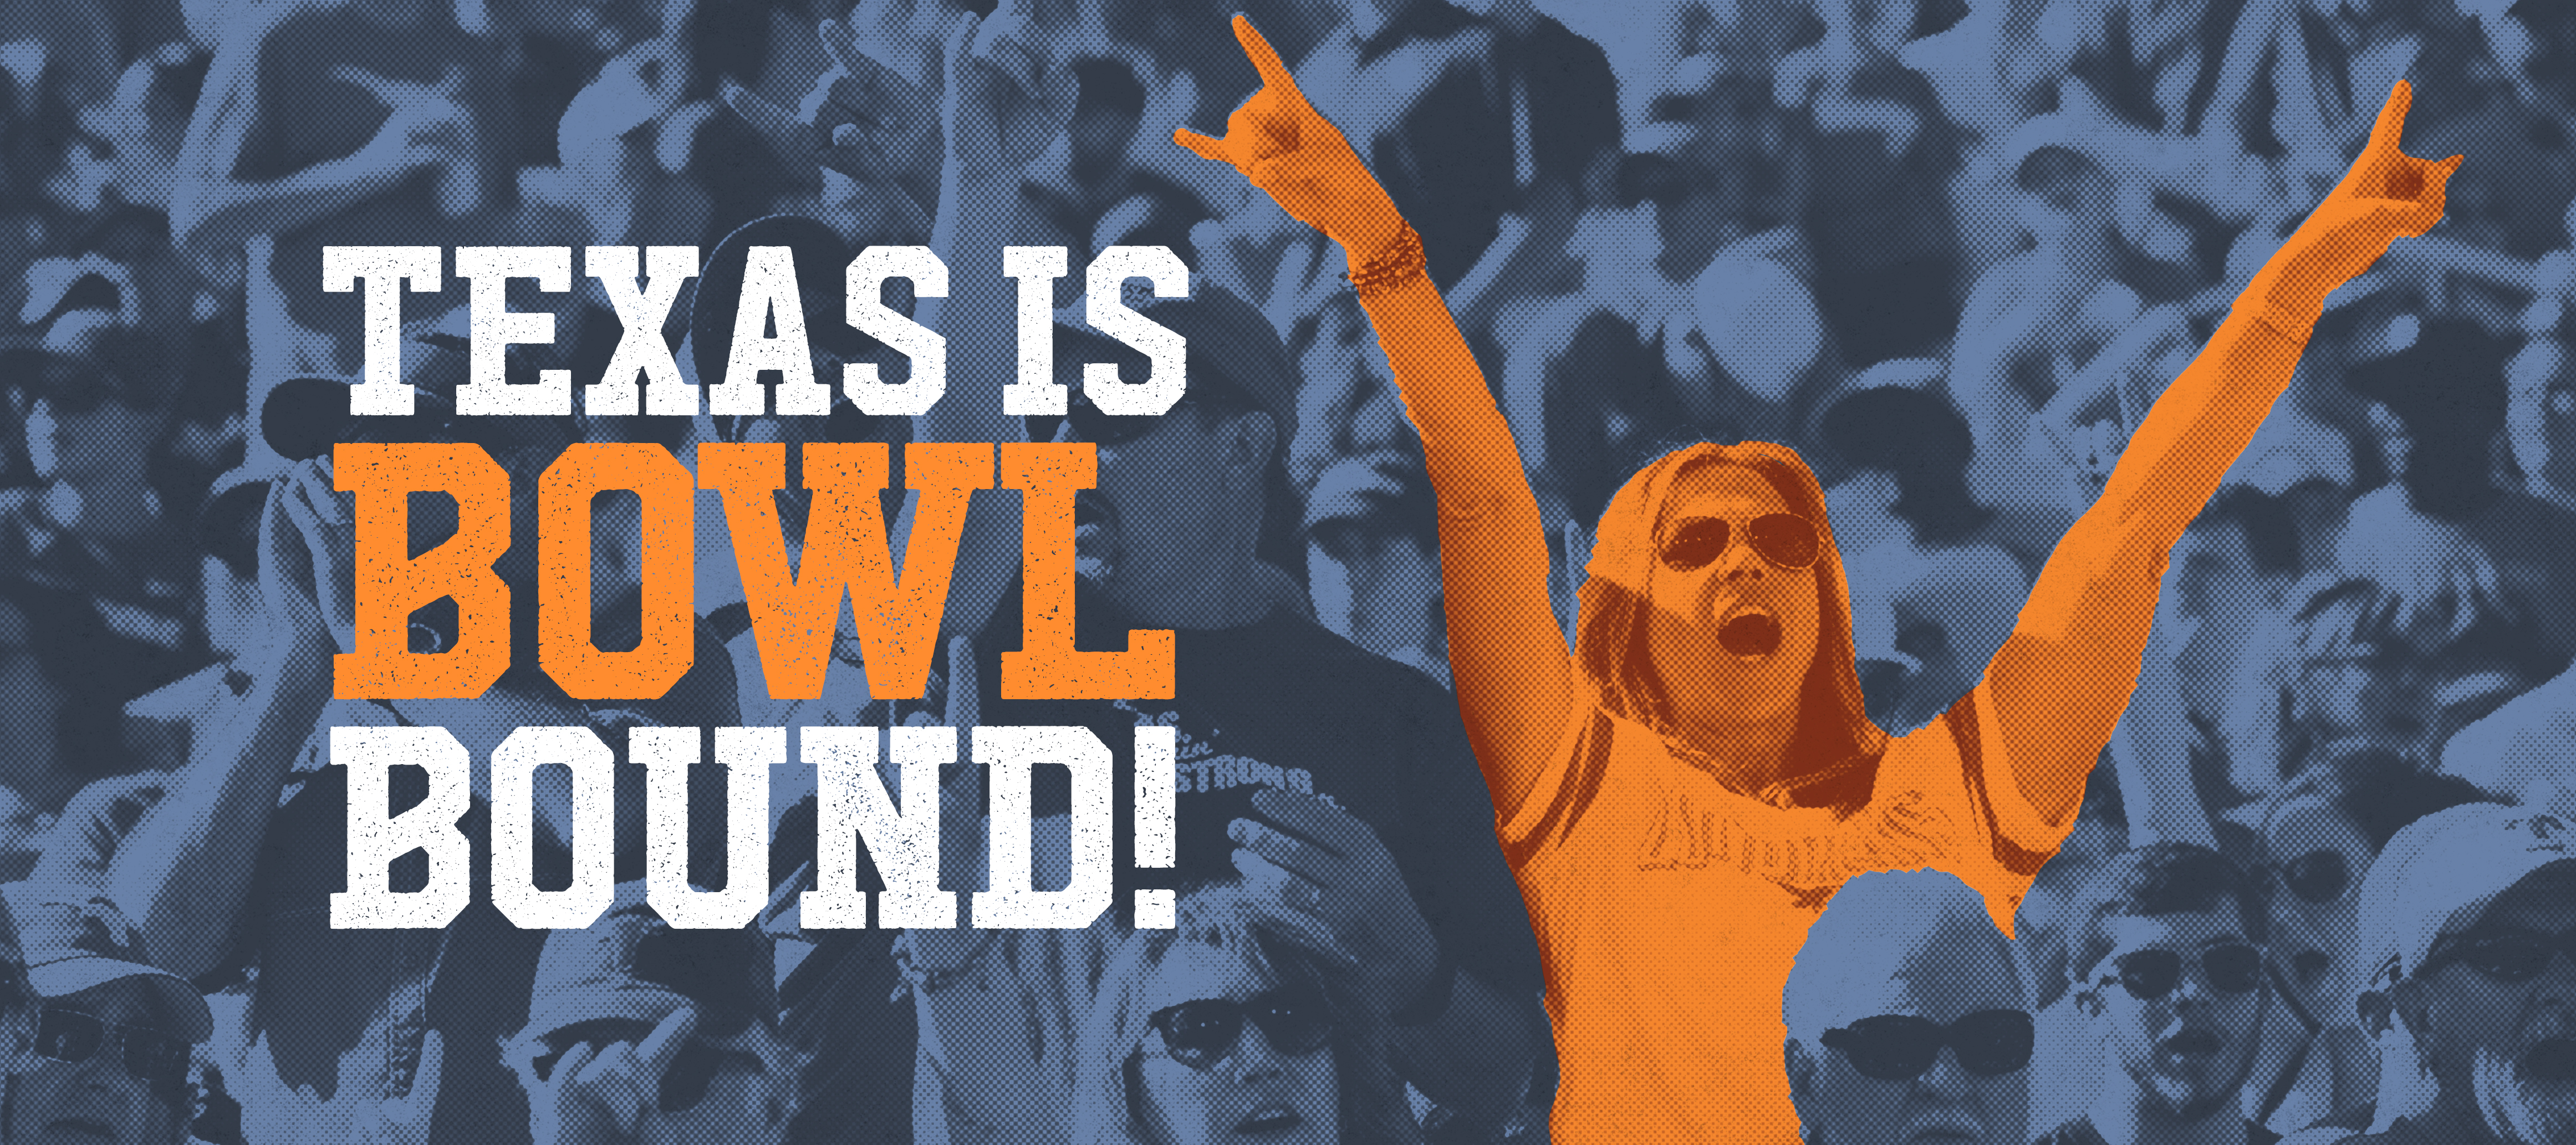 Texas Is Bowl Bound!